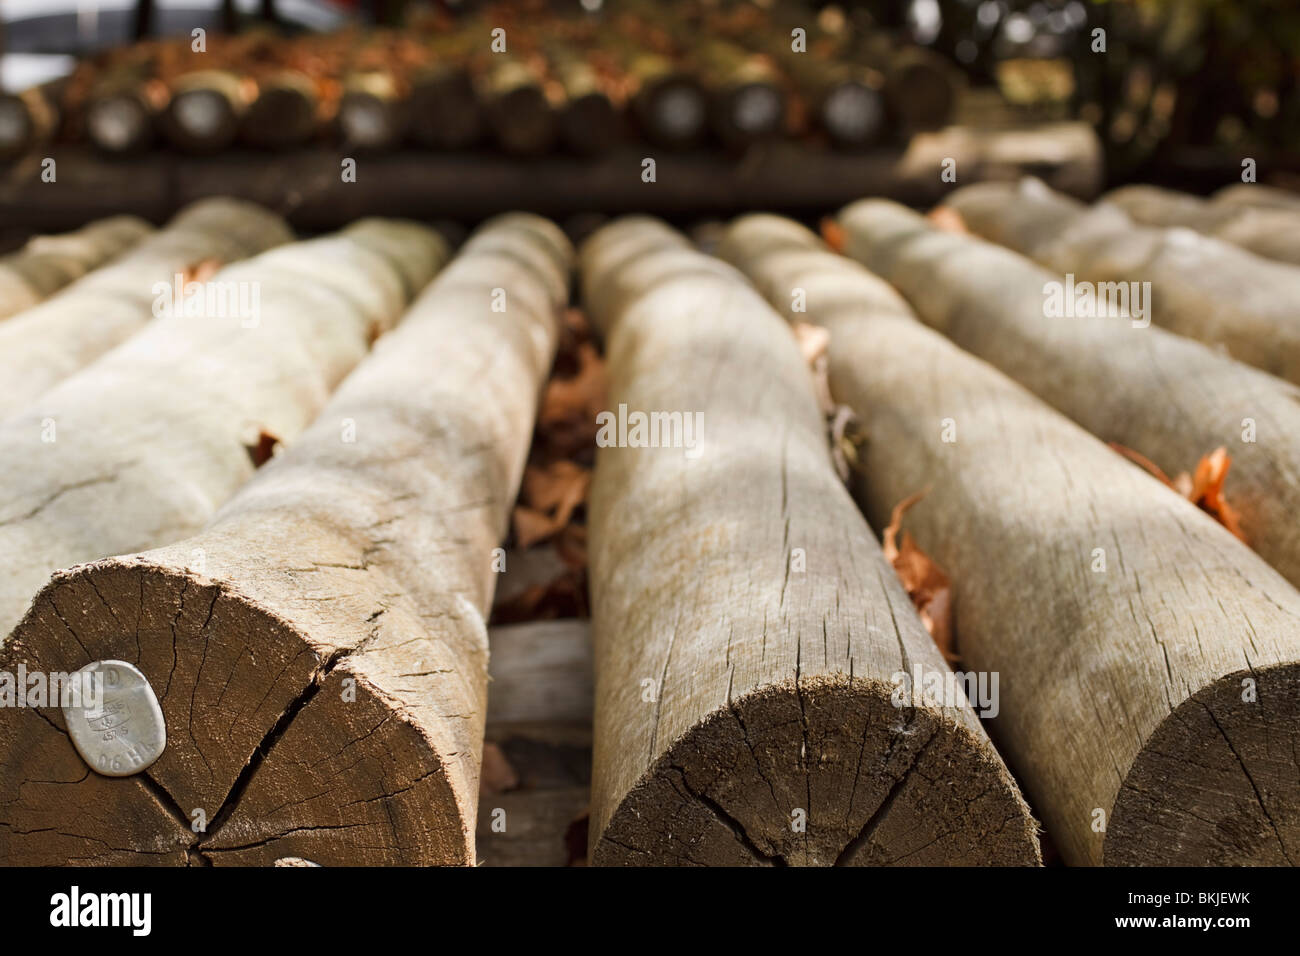 Stacked cut timber poles used for fencing, carrying markings confirming standardised timber treatment. South Africa. - Stock Image